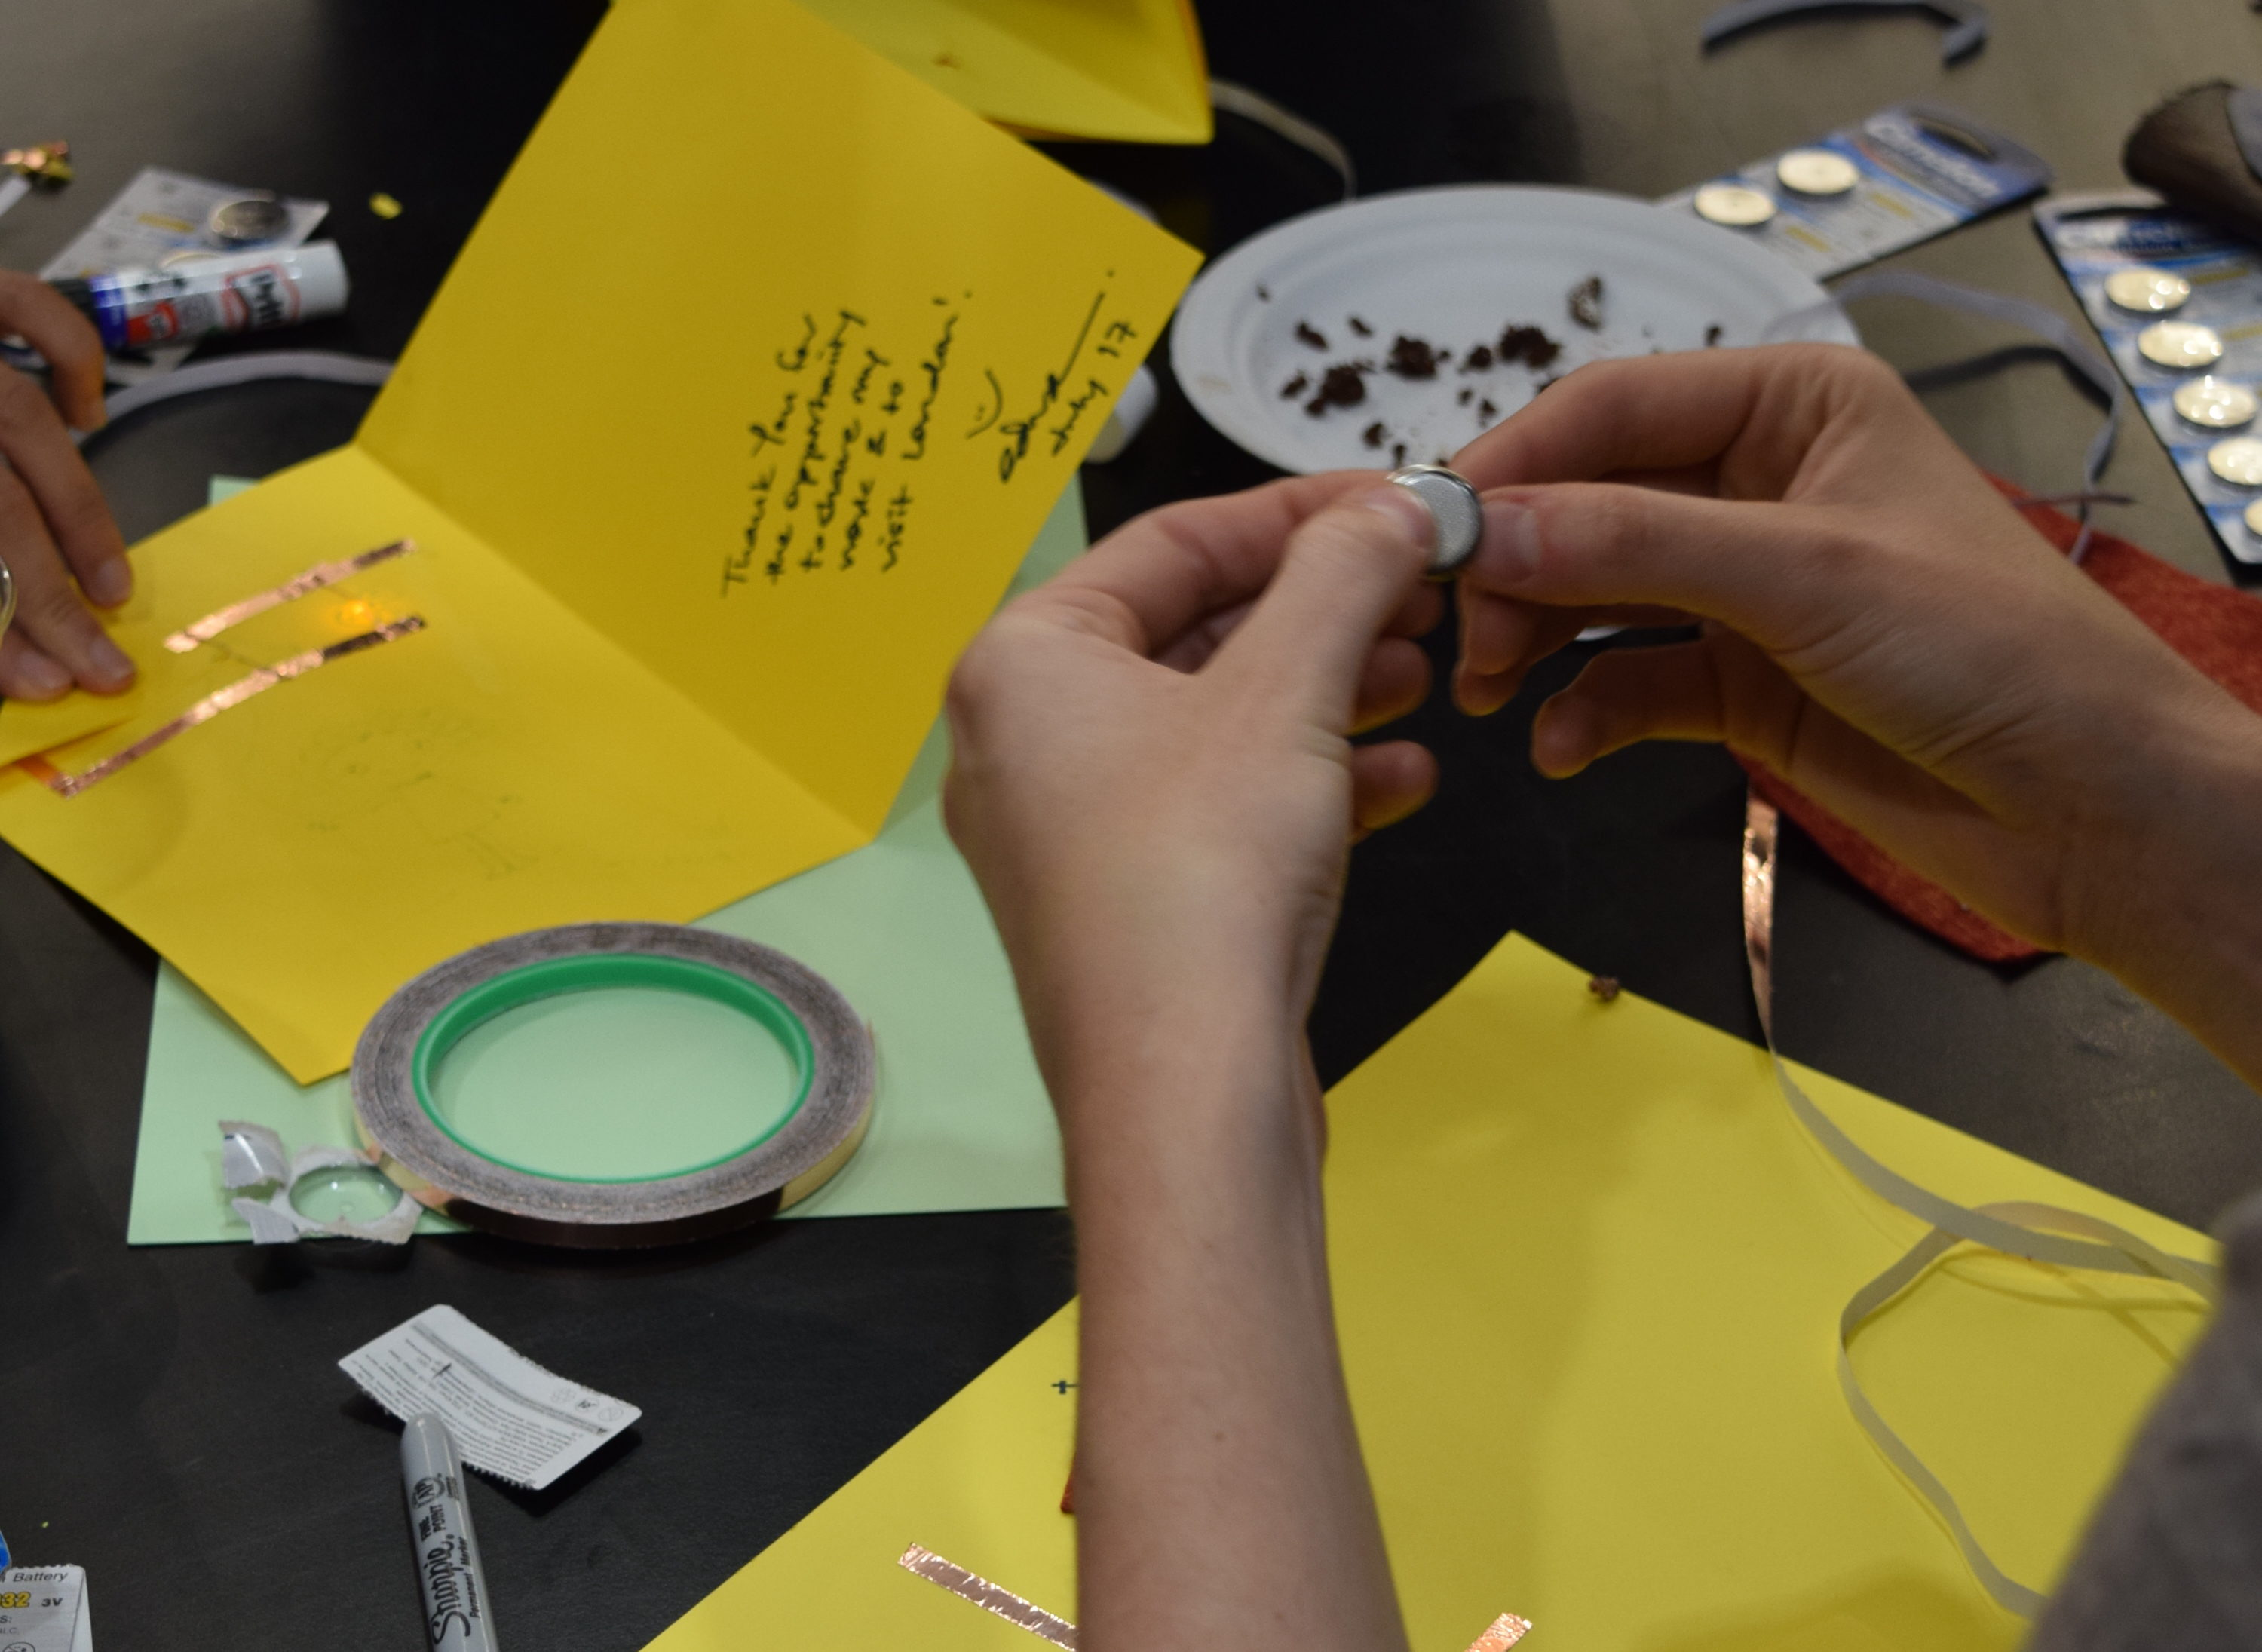 Making Spaces: A research event exploring equity for children and young people in makerspaces